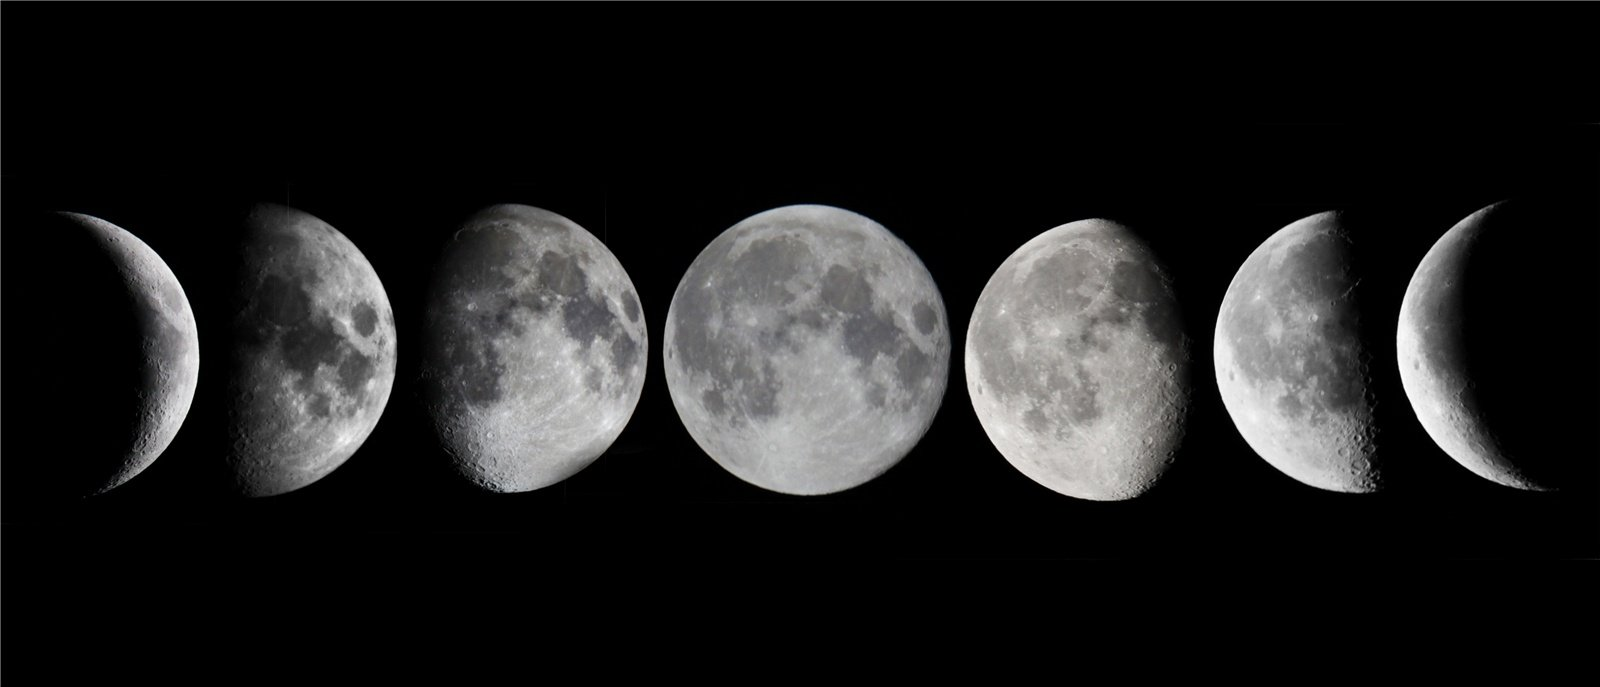 the pattern check the picture bellow draw your own moon phases voil 1600x687